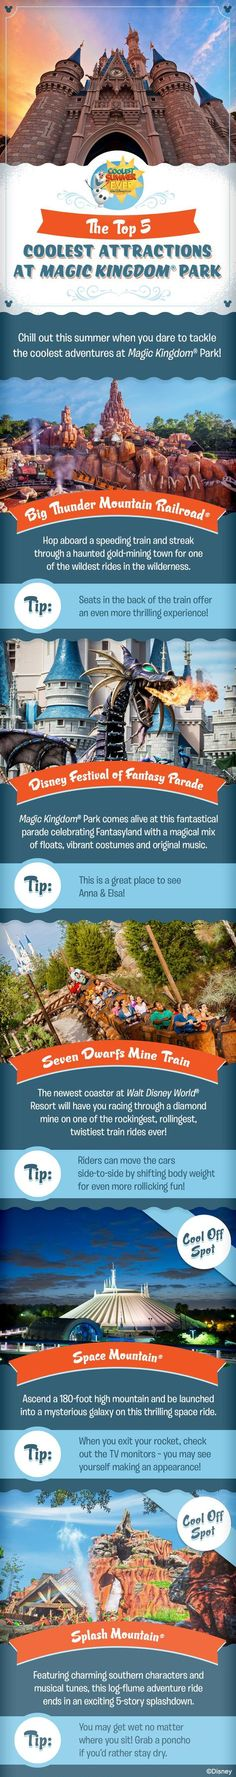 Check out the Top 5 Coolest Attractions at Magic Kingdom Park and get ready to have the Coolest Summer Ever as you plan your family vacation at Walt Disney World!